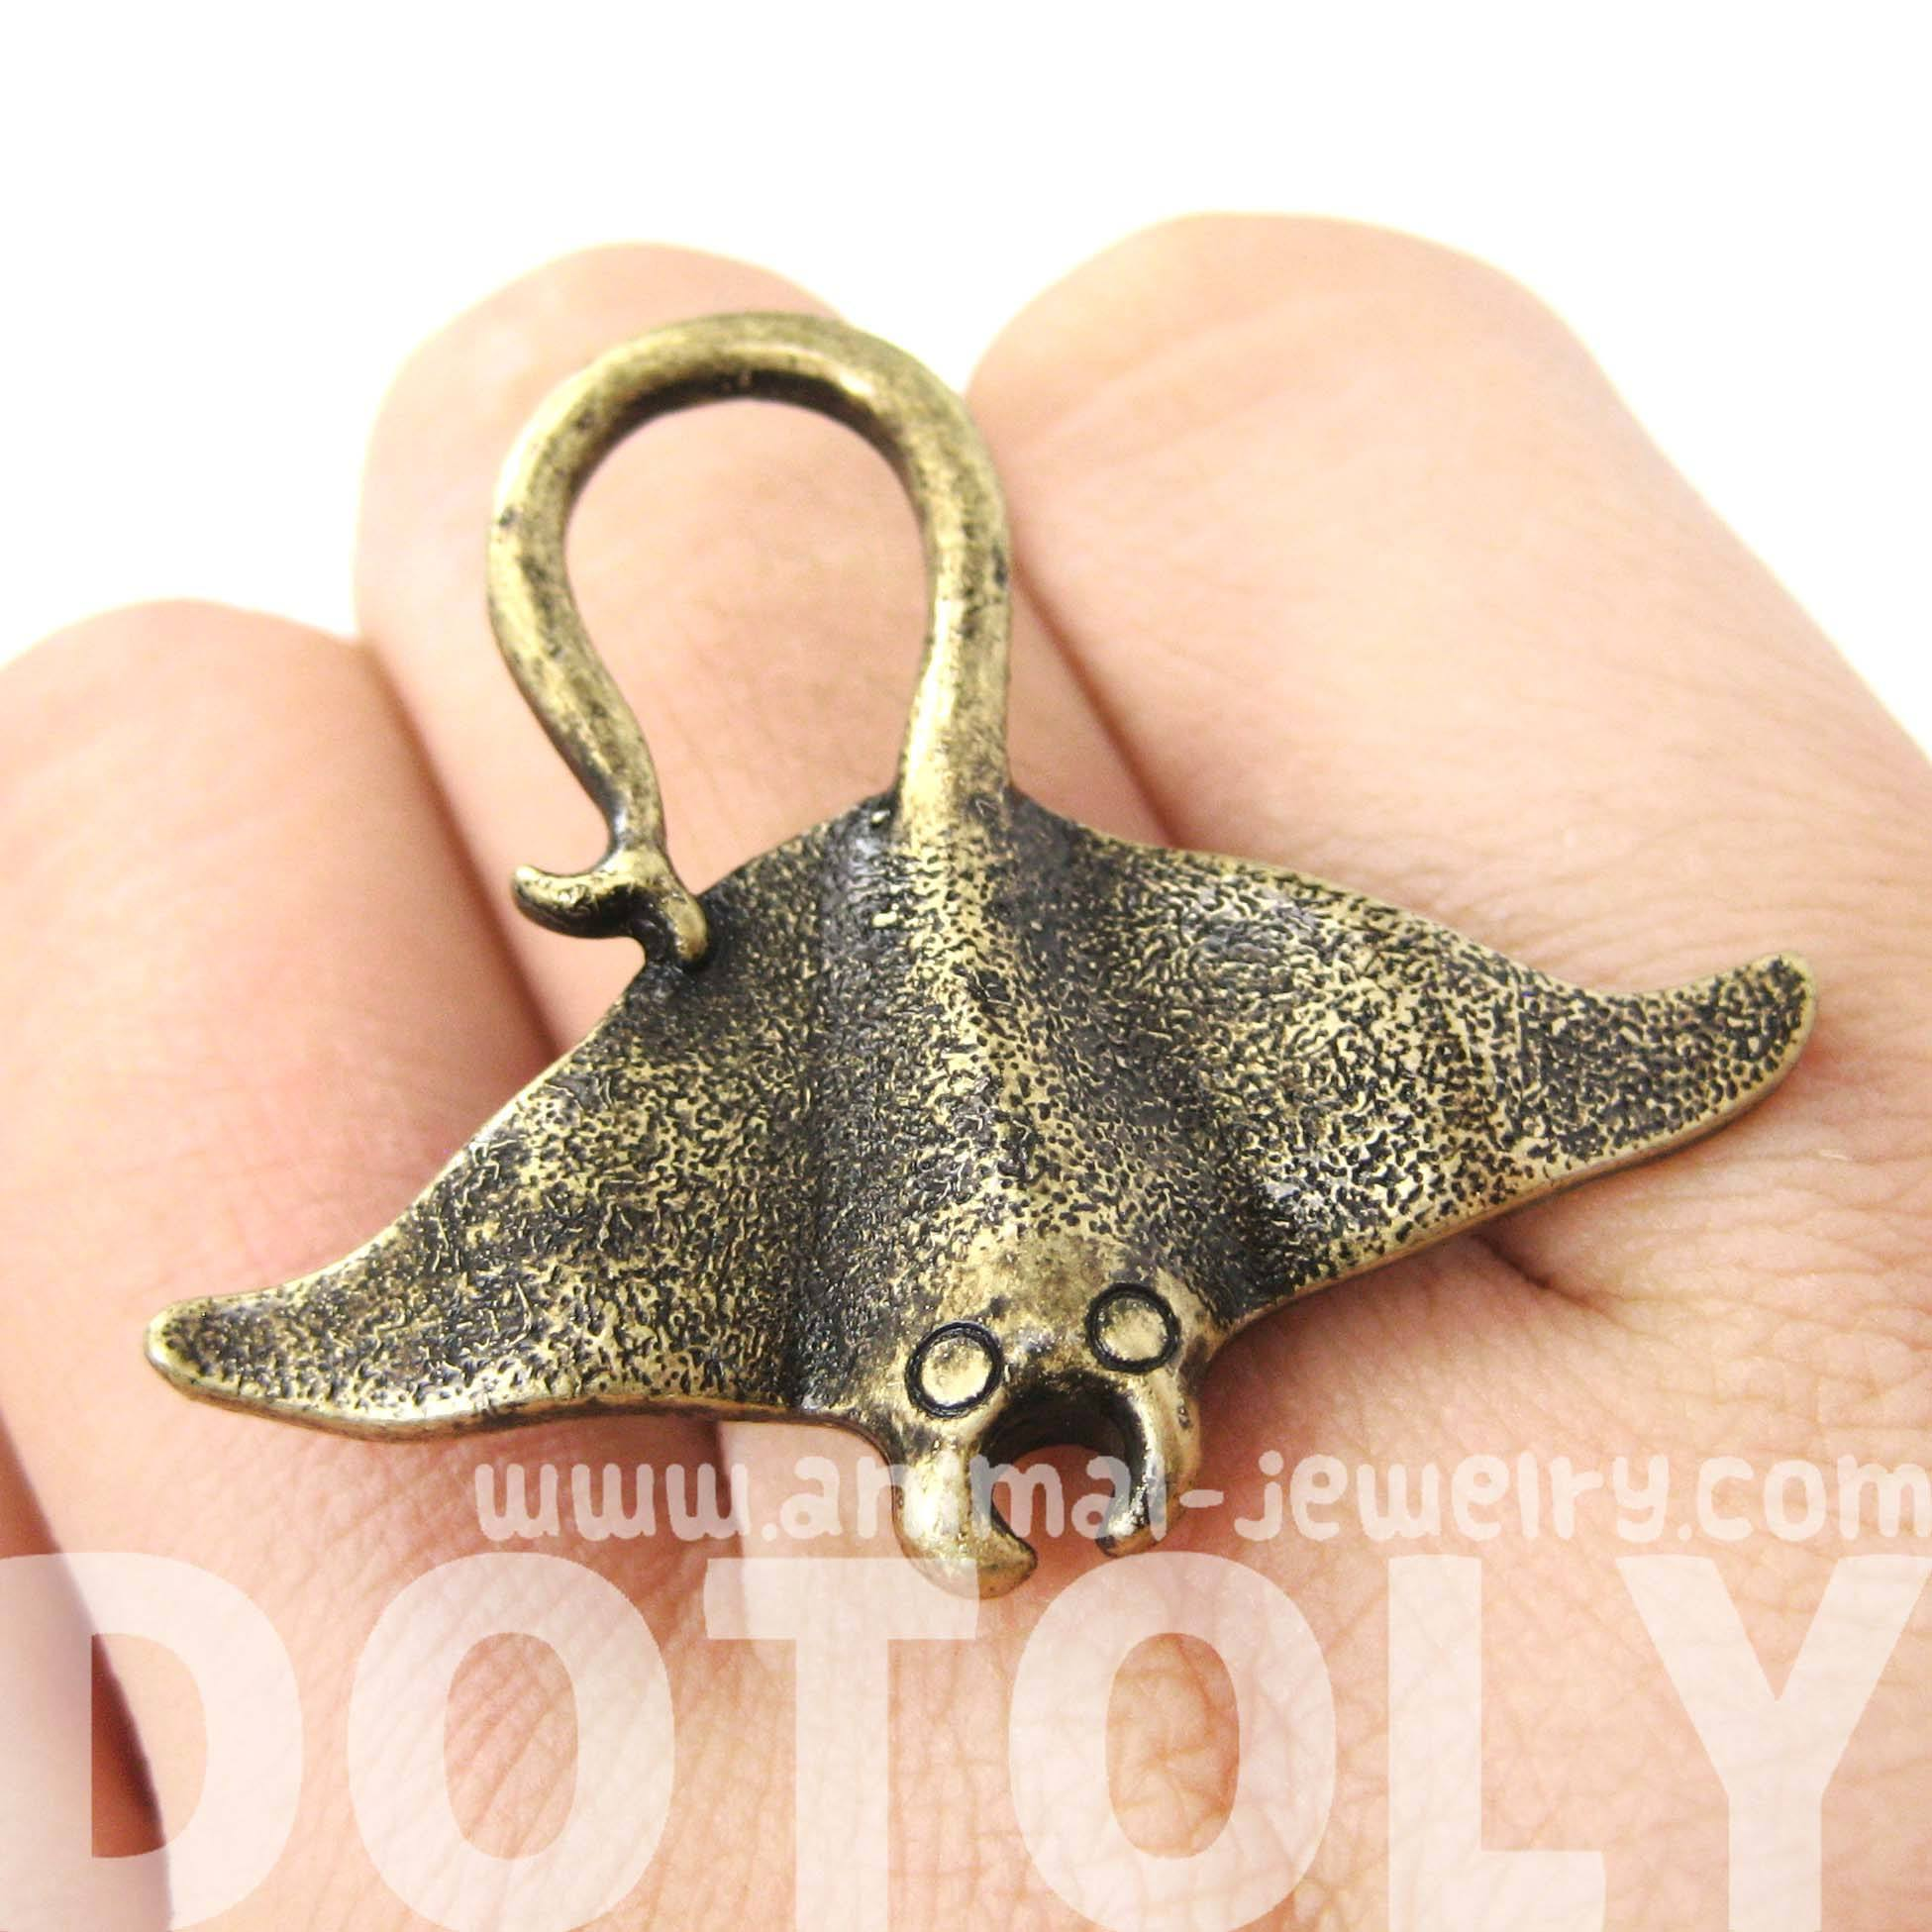 stingray-adjustable-sea-animal-ring-in-brass-animal-jewelry